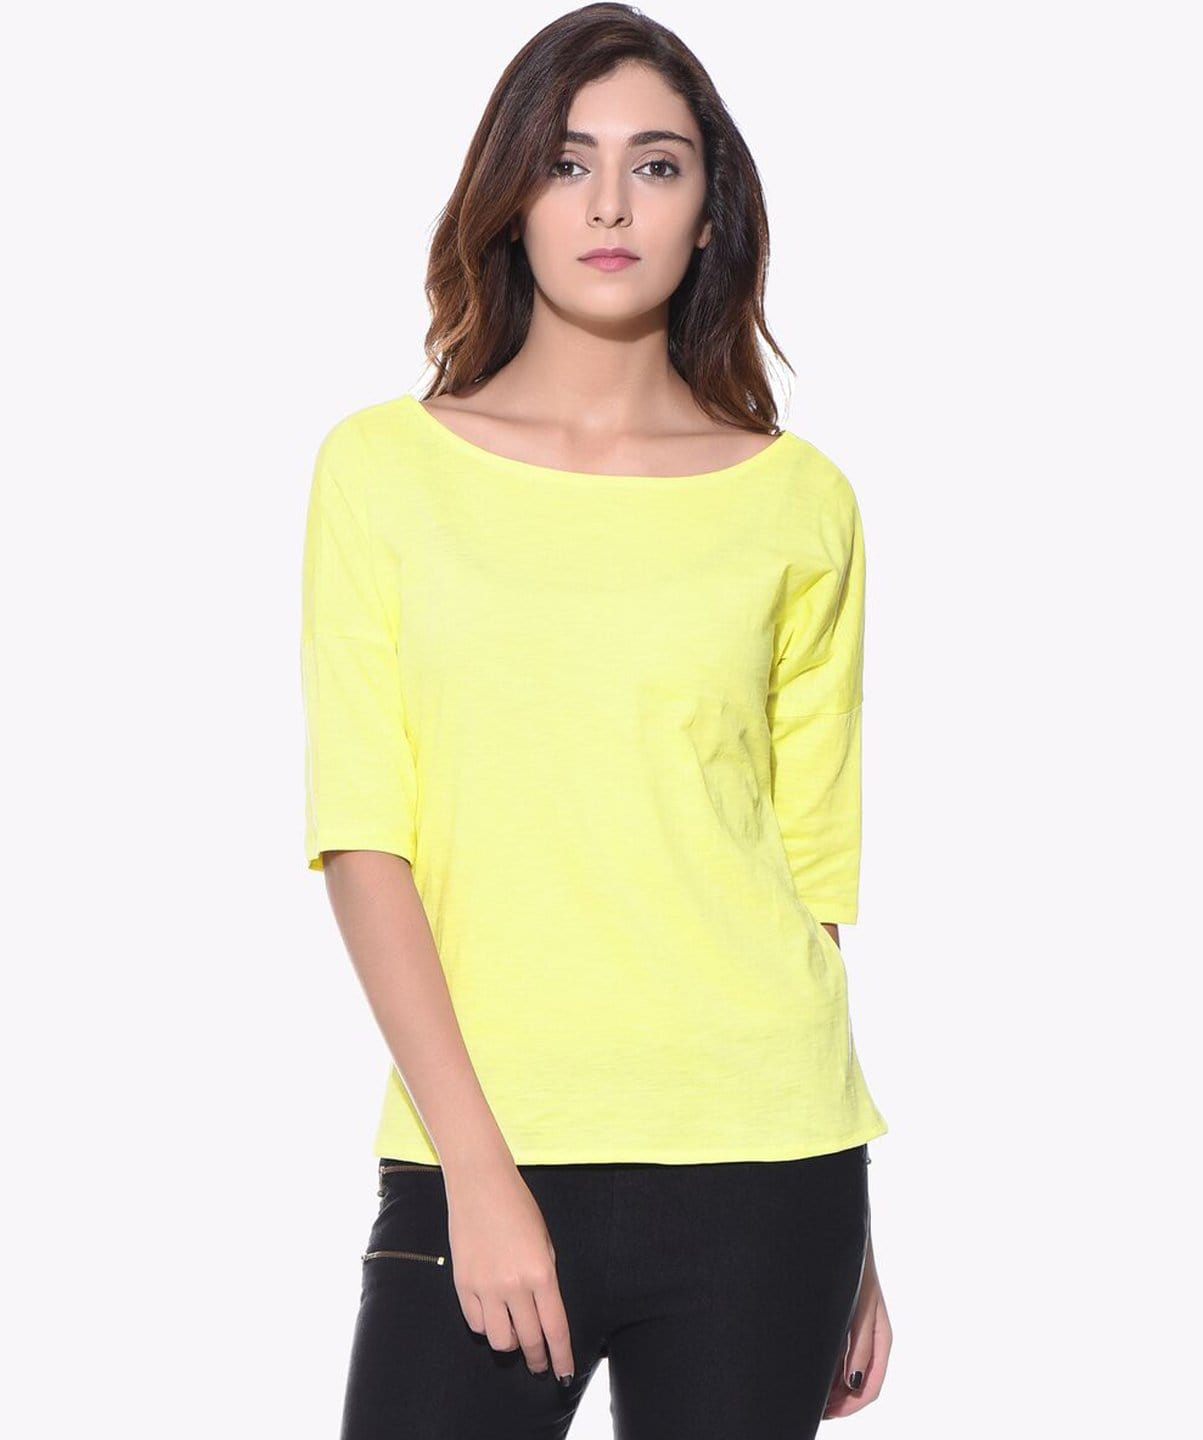 Uptownie Plus Solid Yellow Casual T-shirt (cotton) 1 clearance sale